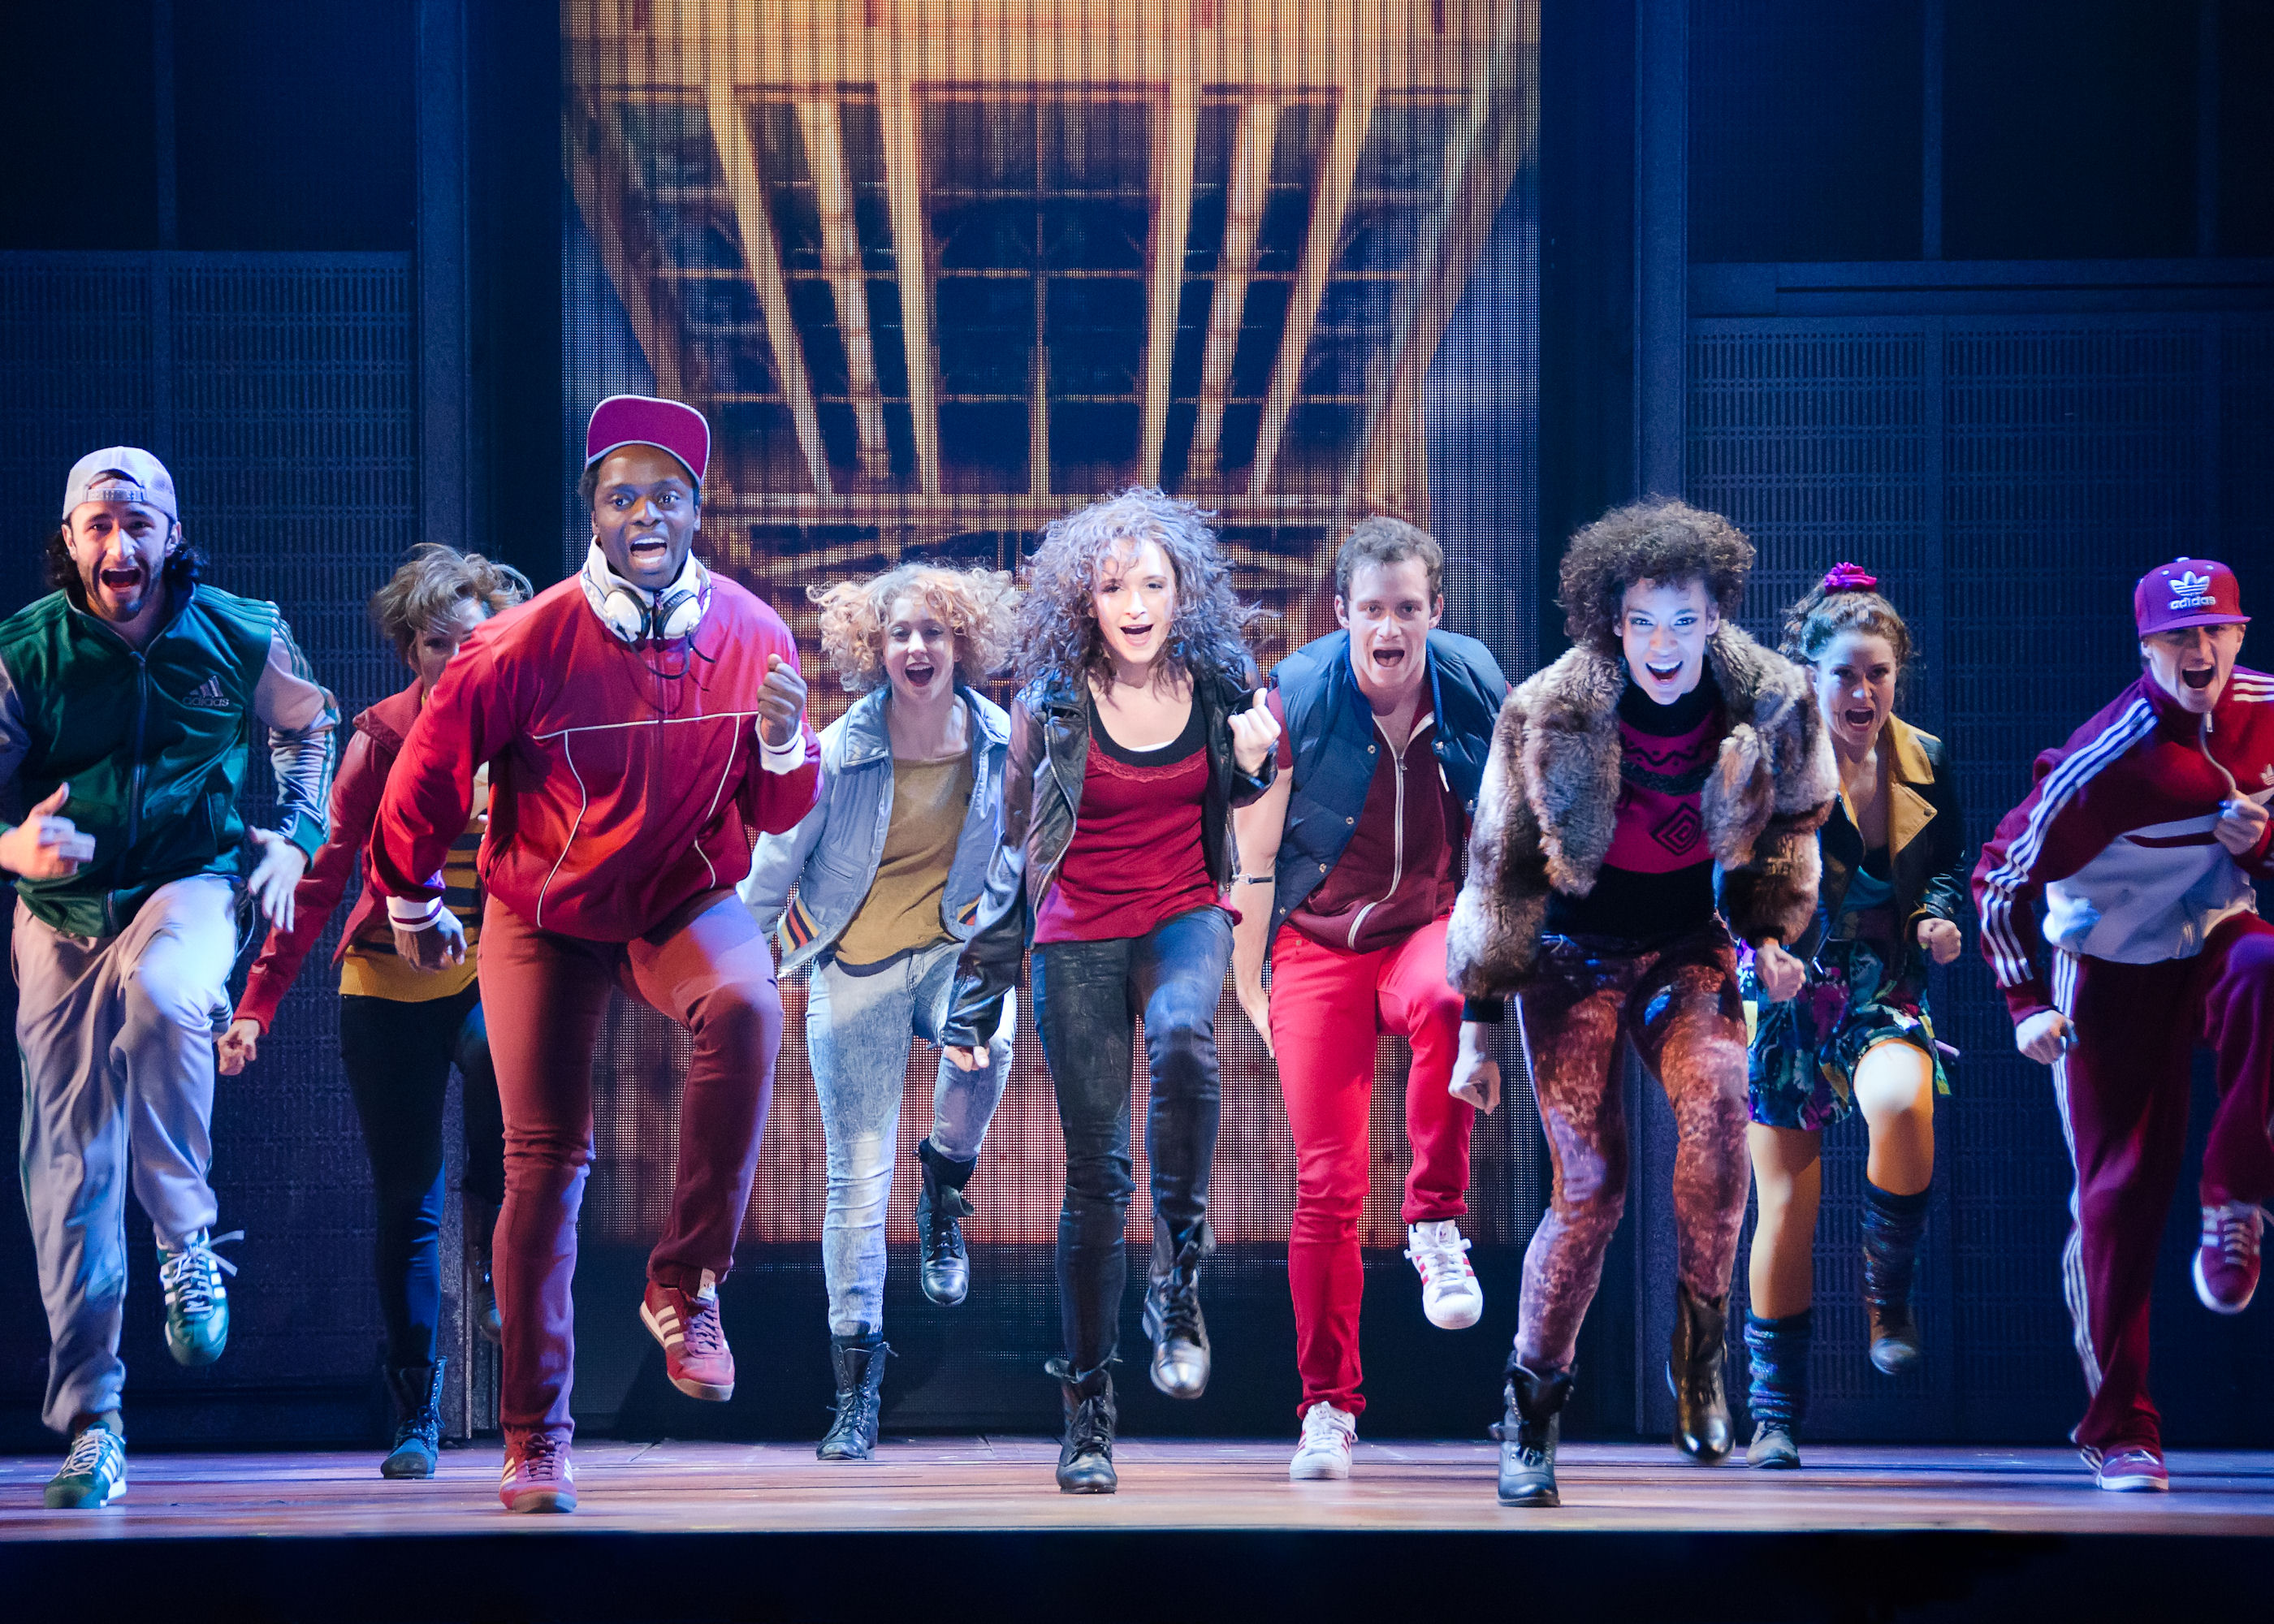 Flashdance Company - Photo by Kyle Froman